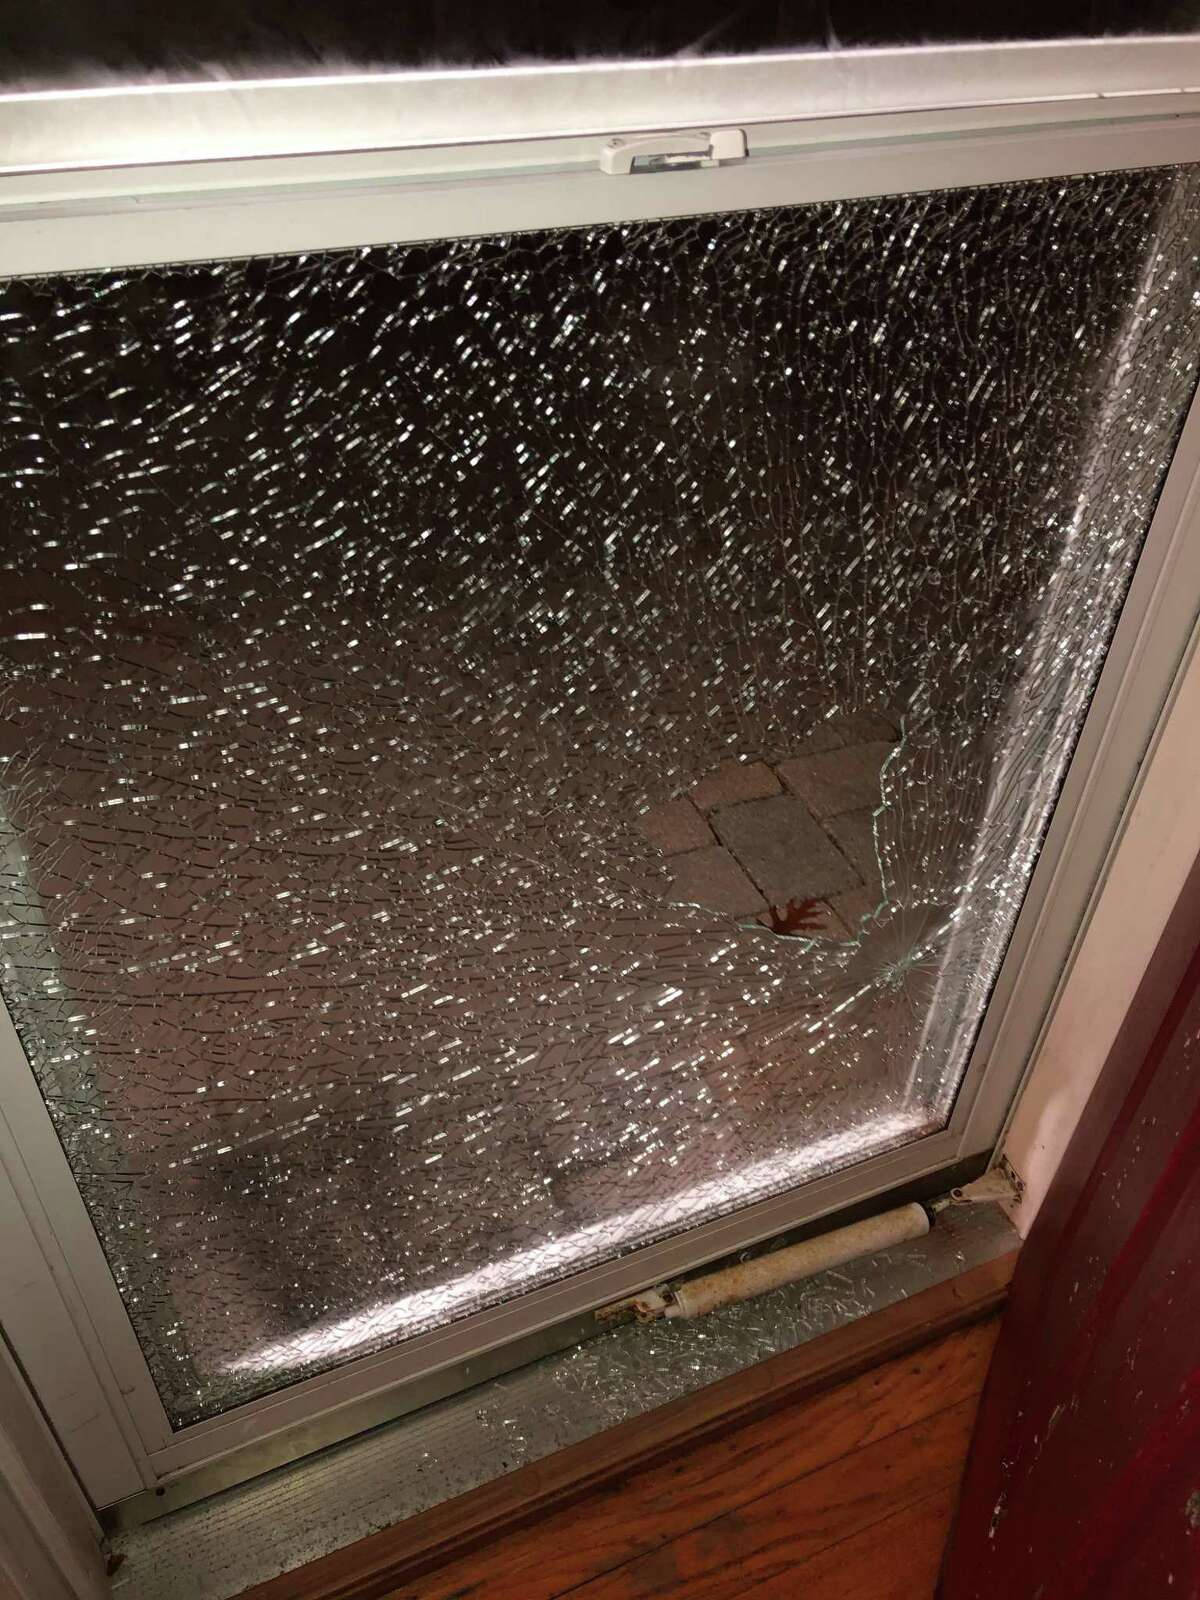 A resident posted a photo of a broken window to the Neighbors app from Ring, reporting that it was a possible drive-by shooting. Police say the window was shot by a pellet gun. The department says it doesn't consider reports on social media and apps official.